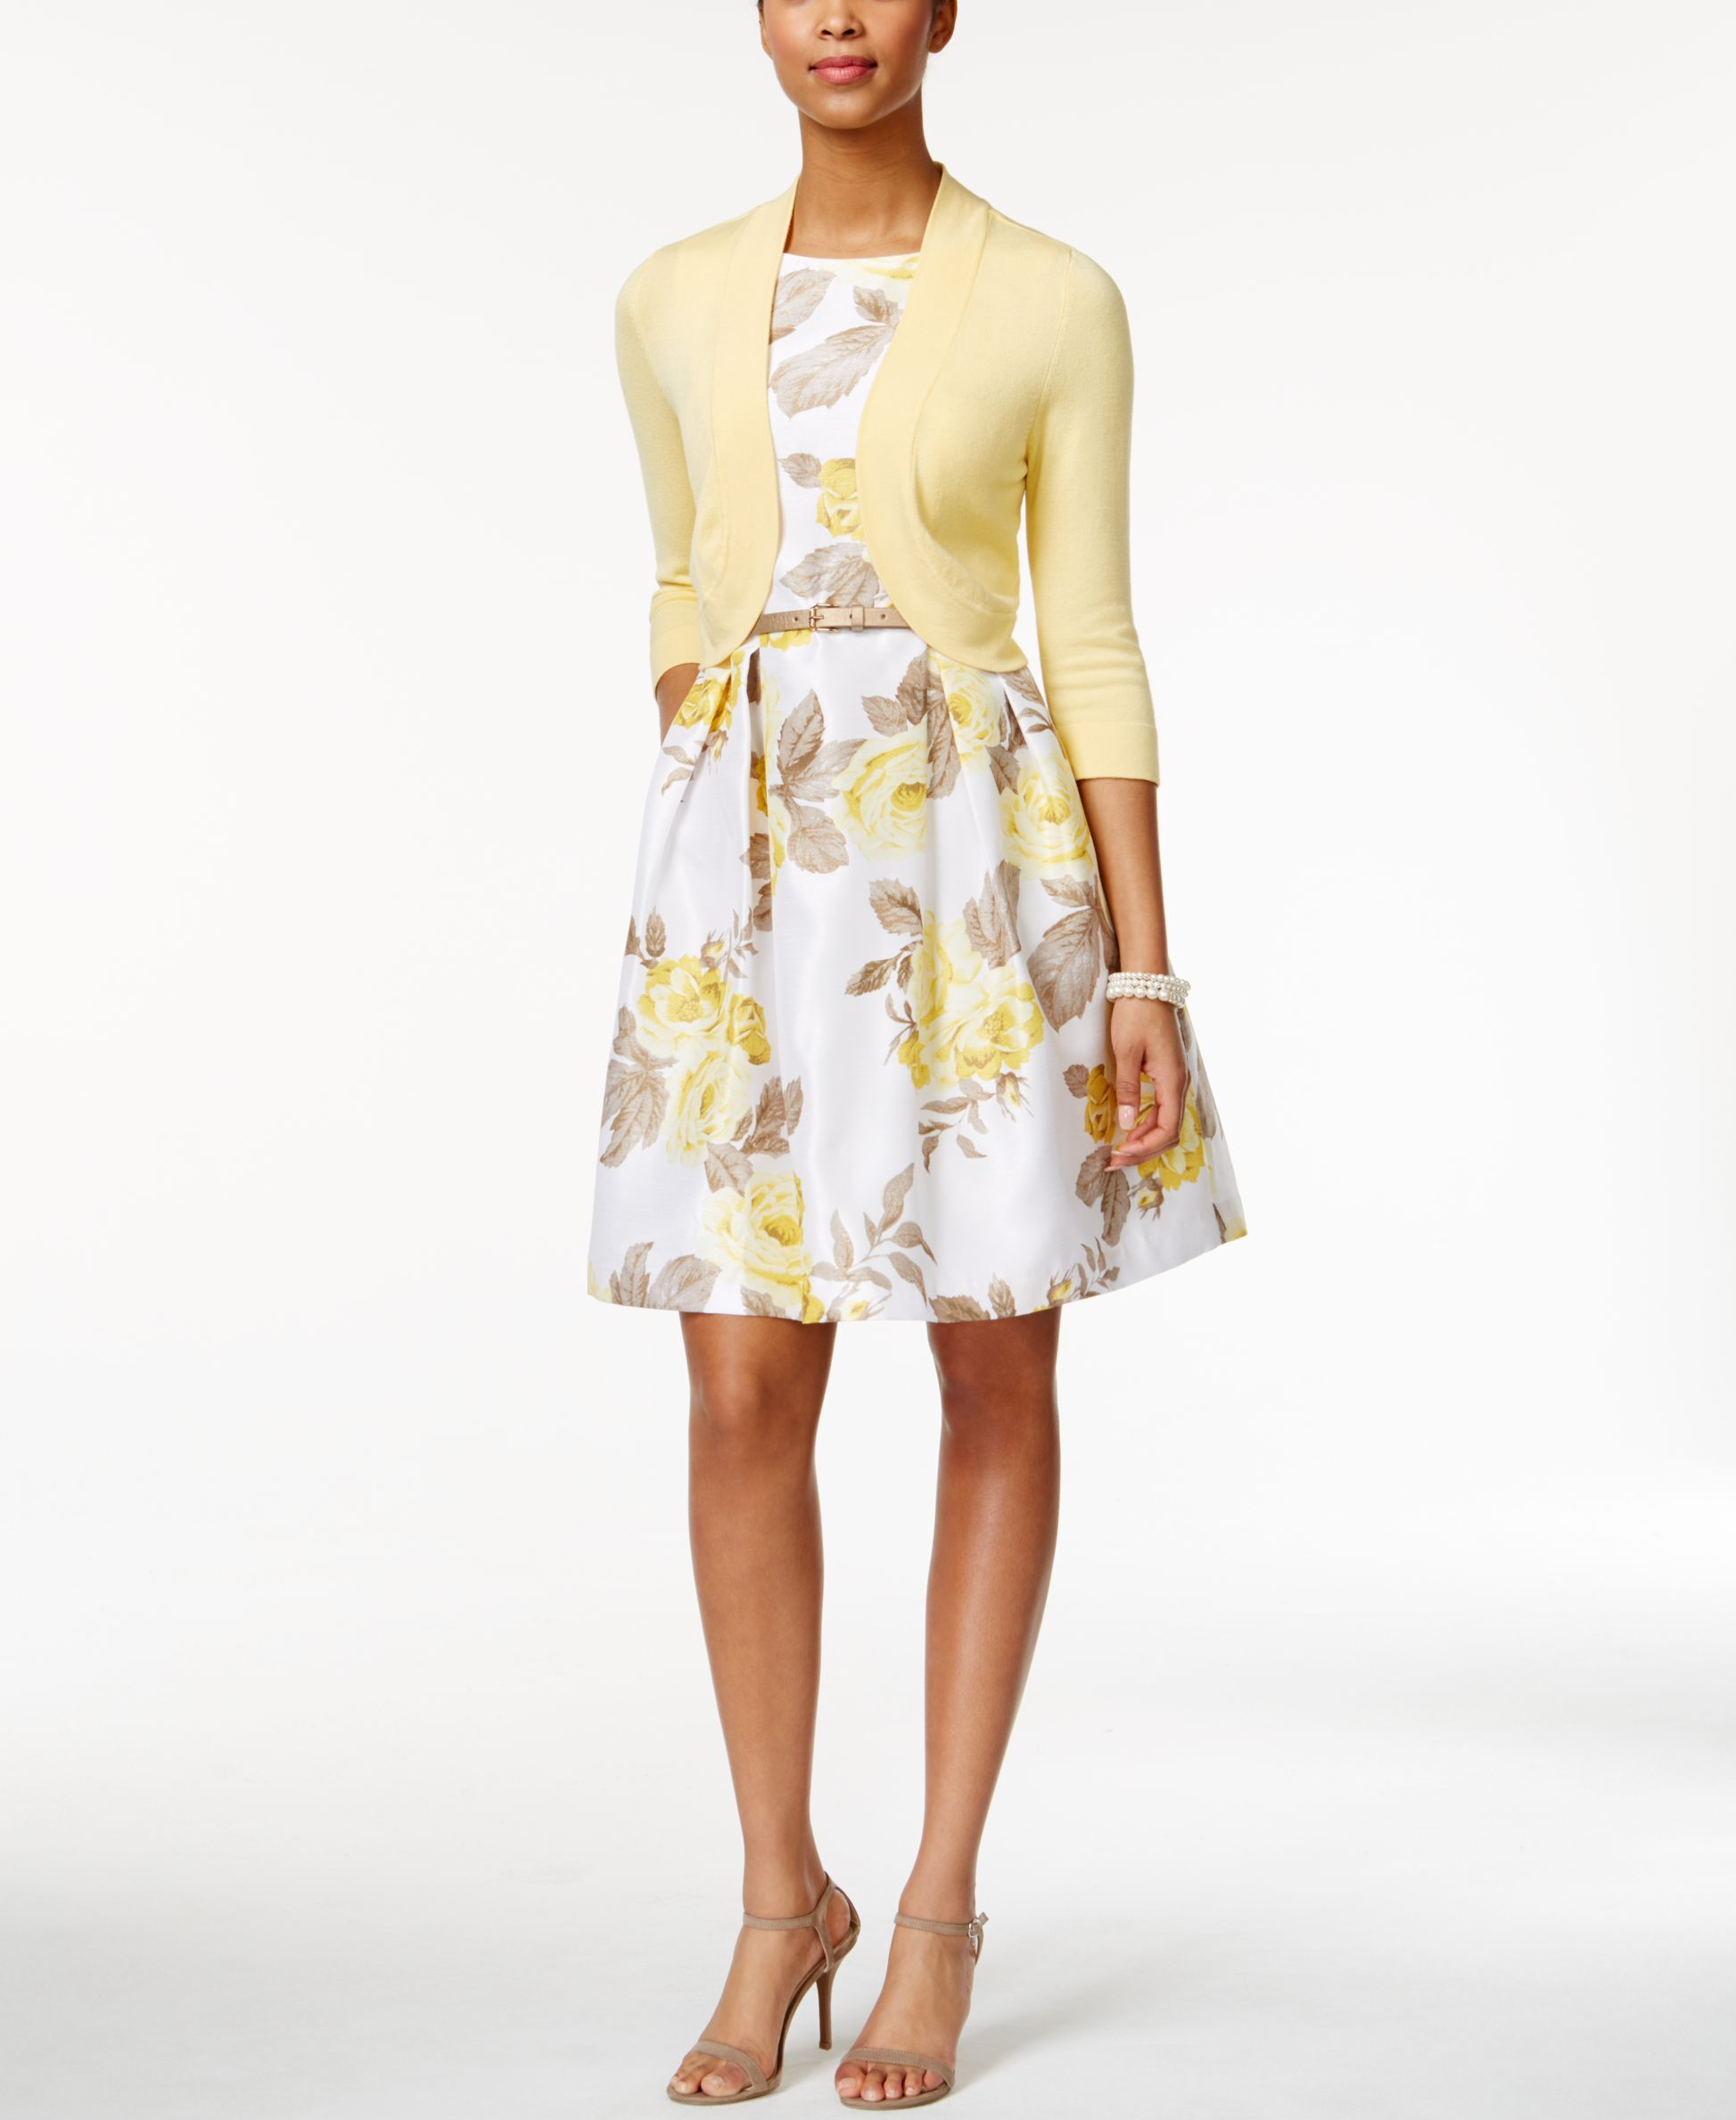 bffb4a15bbc6 Jessica Howard Belted Floral-Print Fit & Flare Dress and Cardigan ...